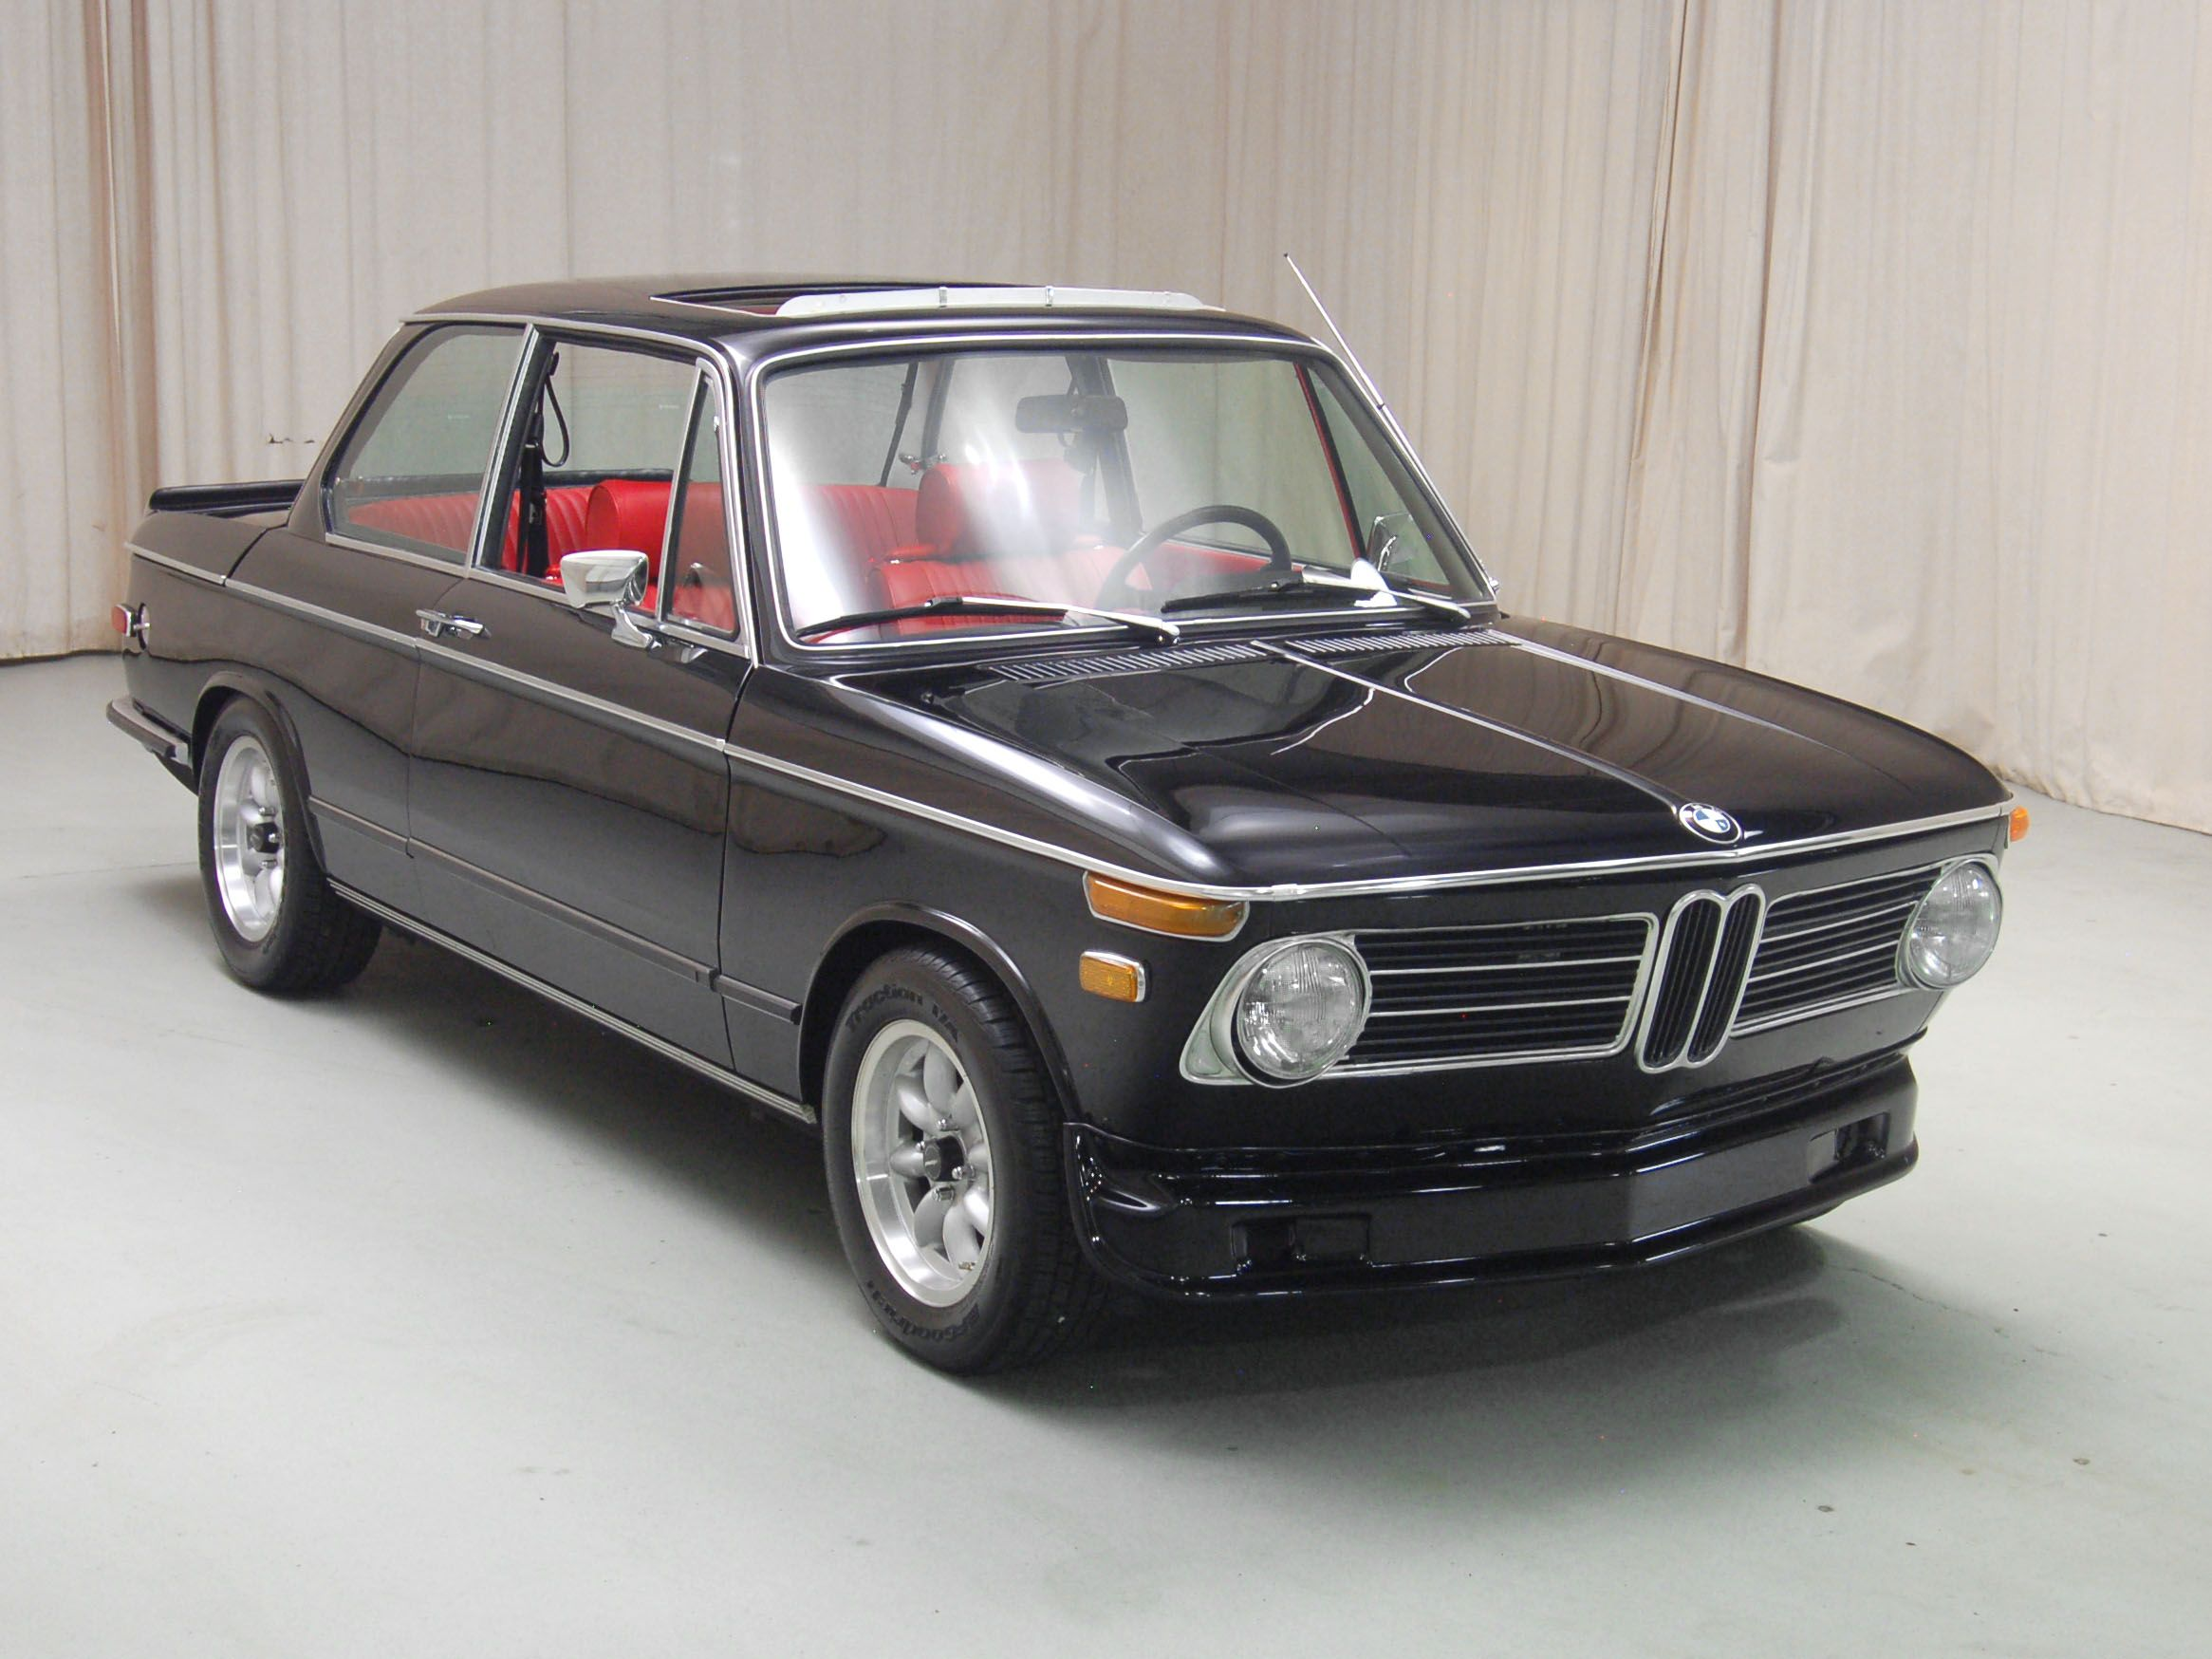 1972 bmw 2002 tii my first car my first love